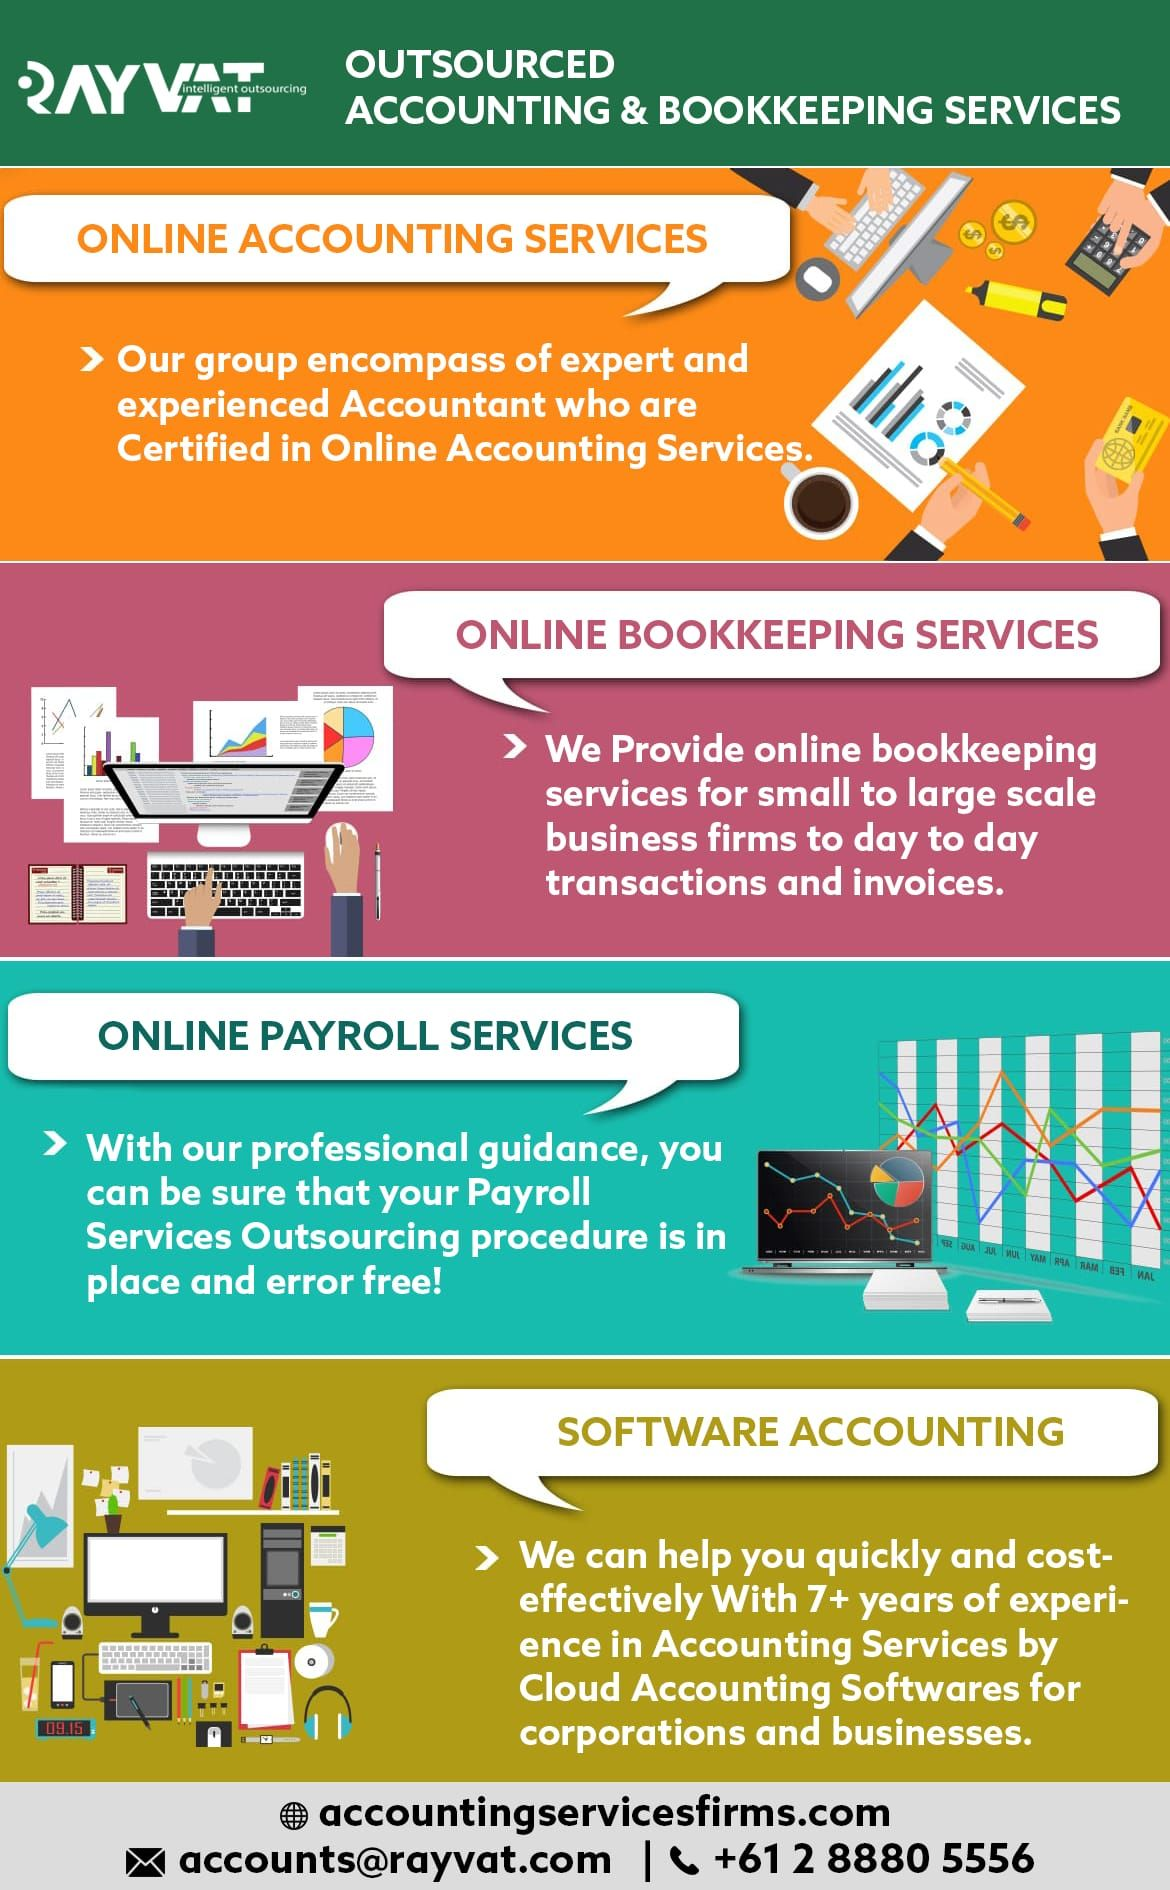 Outsource Accounting Services Is One Of The Most Used